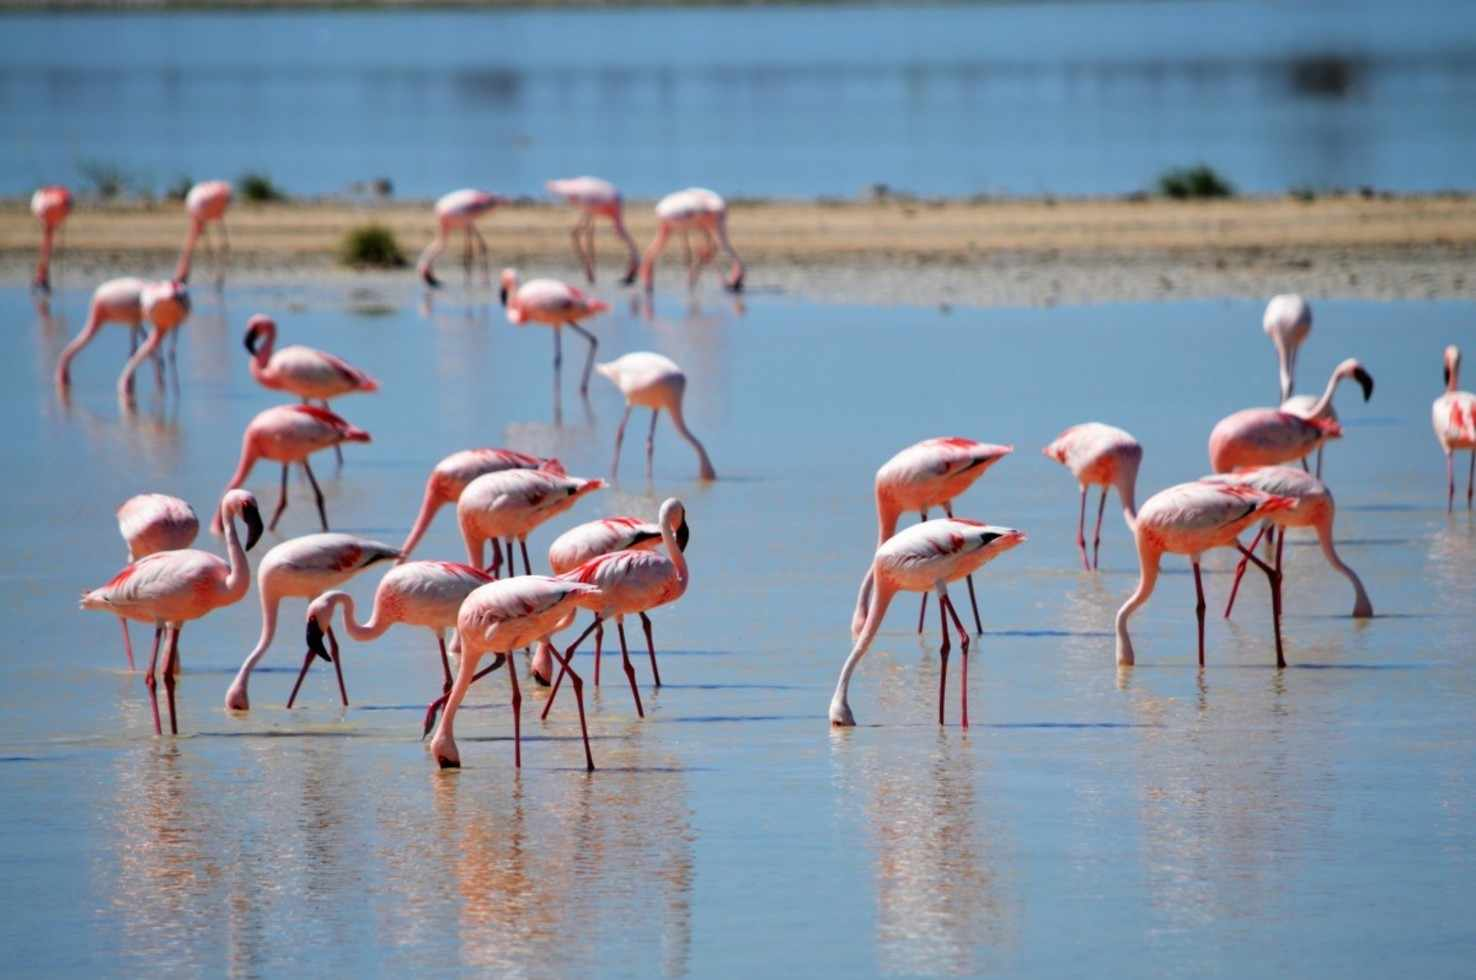 Large flamingos flamingos in the nature pink water drink animal bird africa